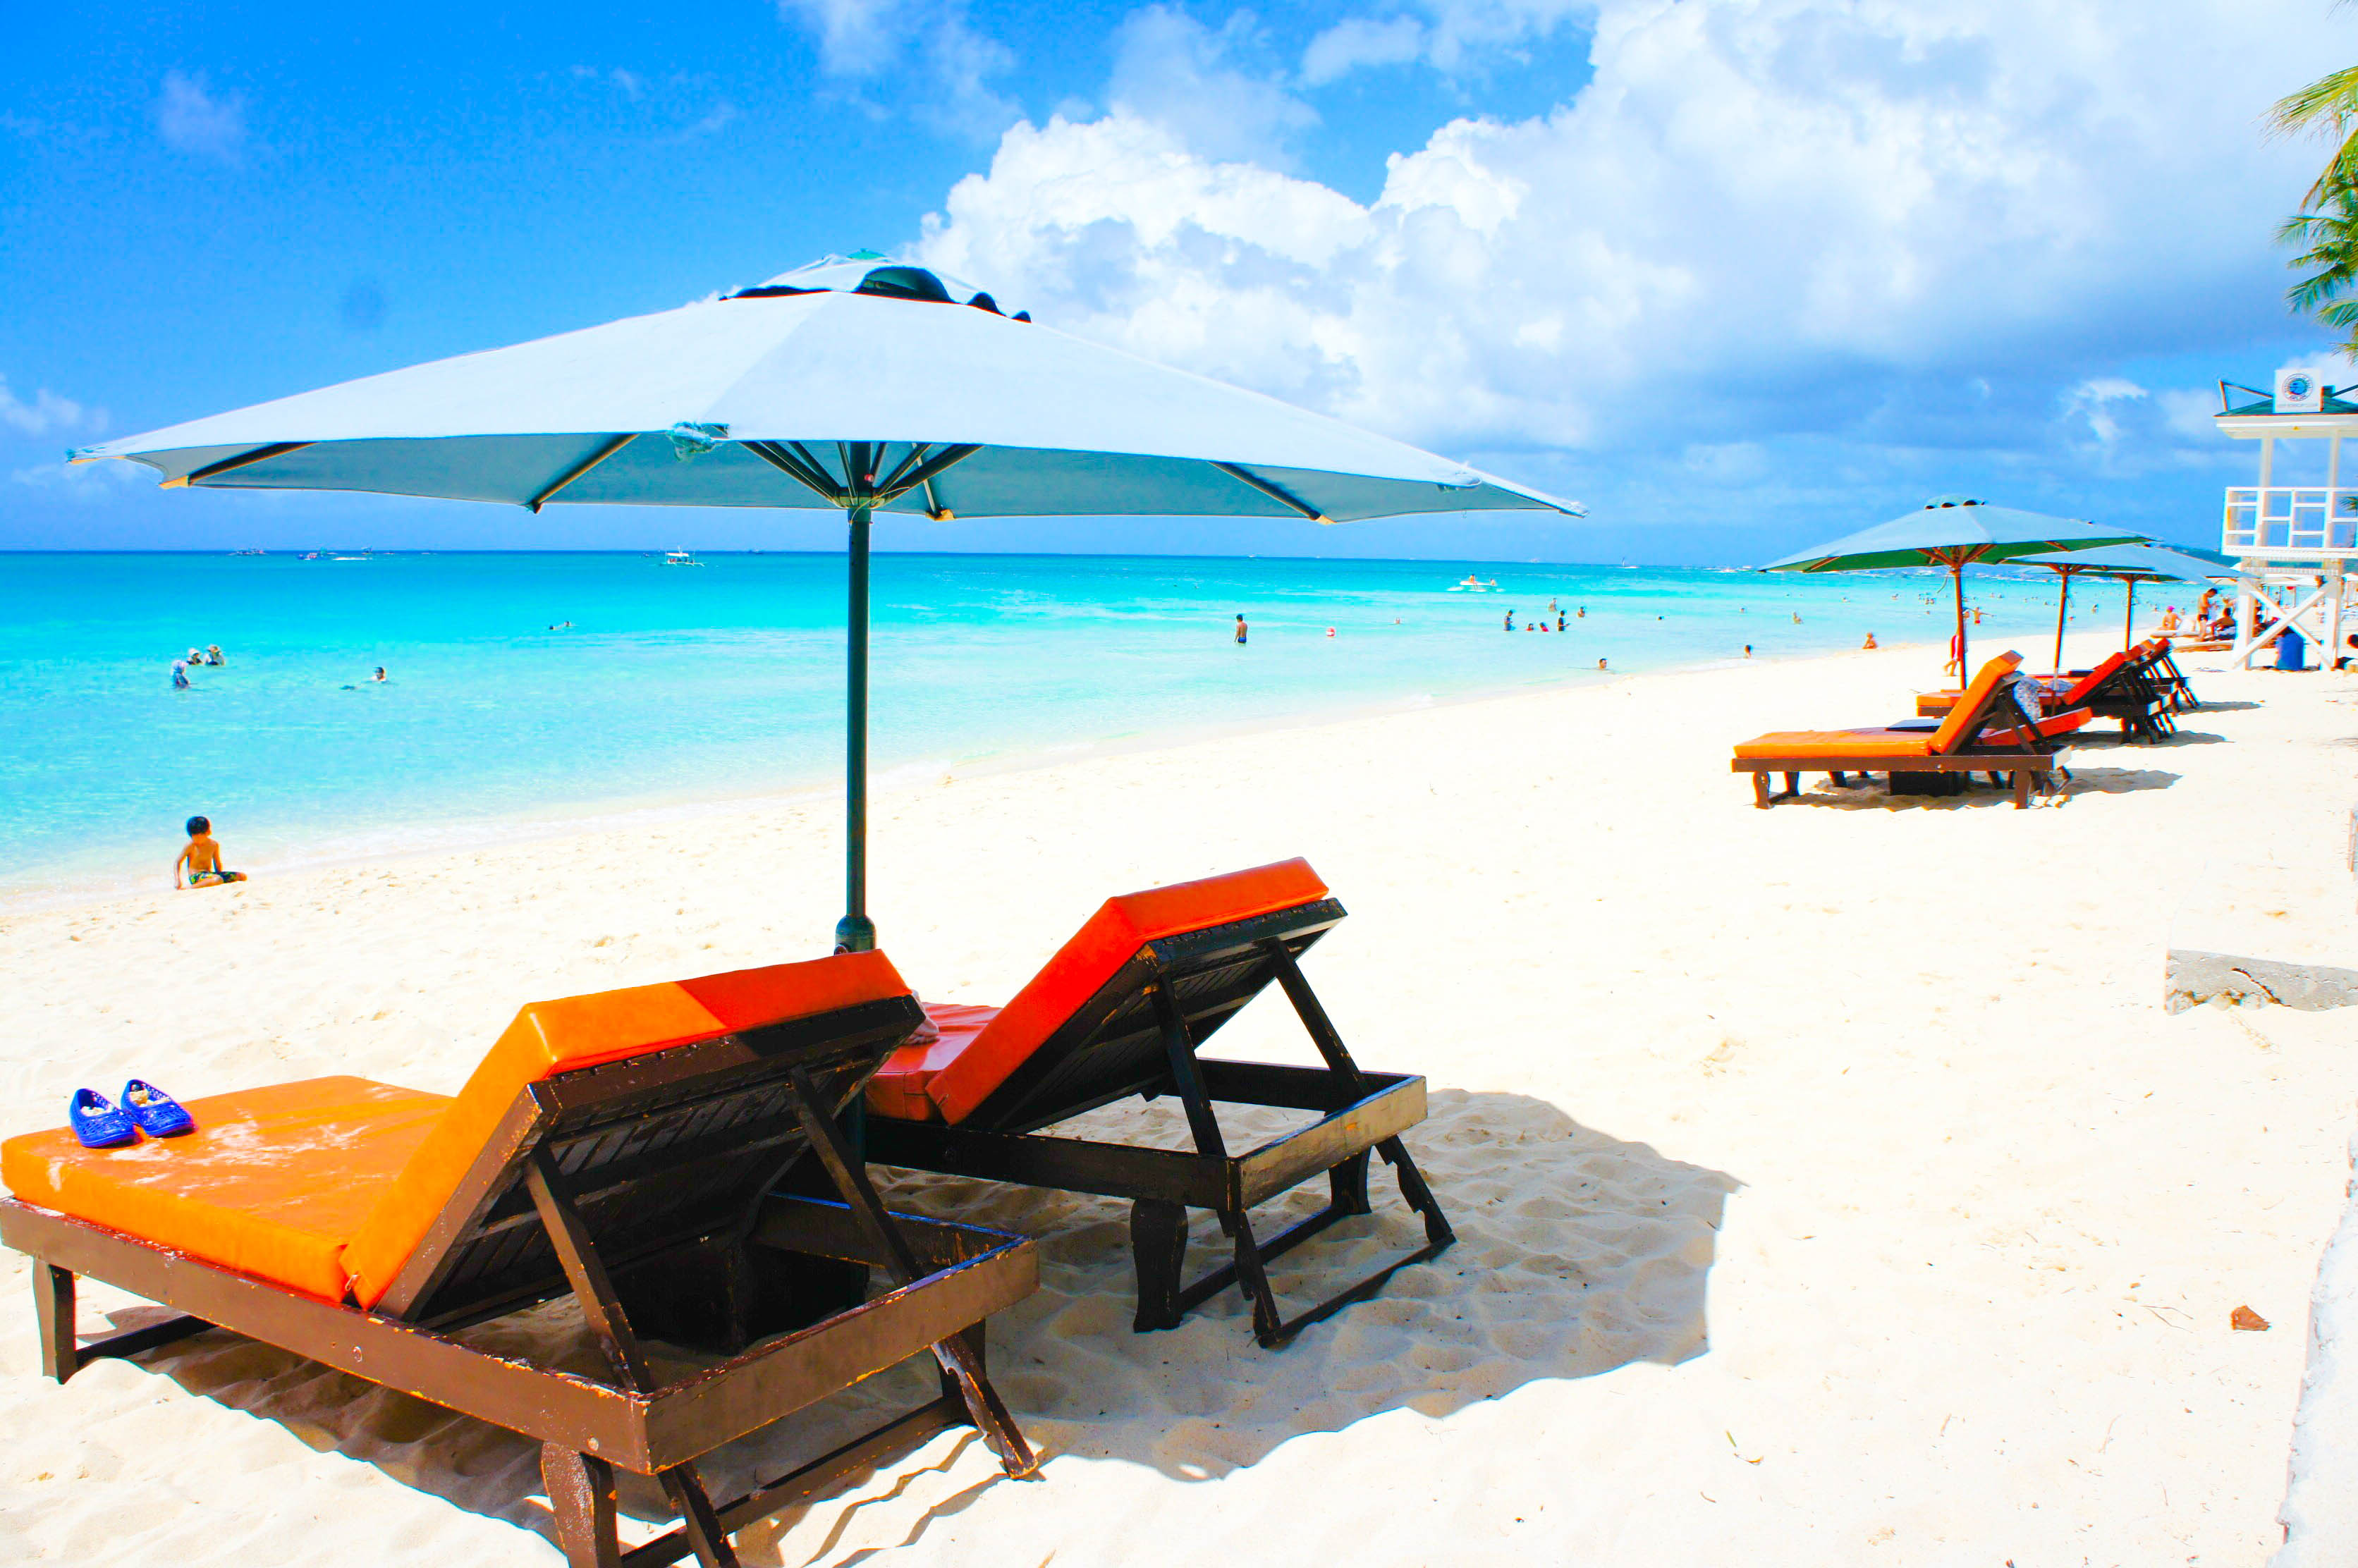 Beach chairs with umbrella on a white sand beach fronting blue waters